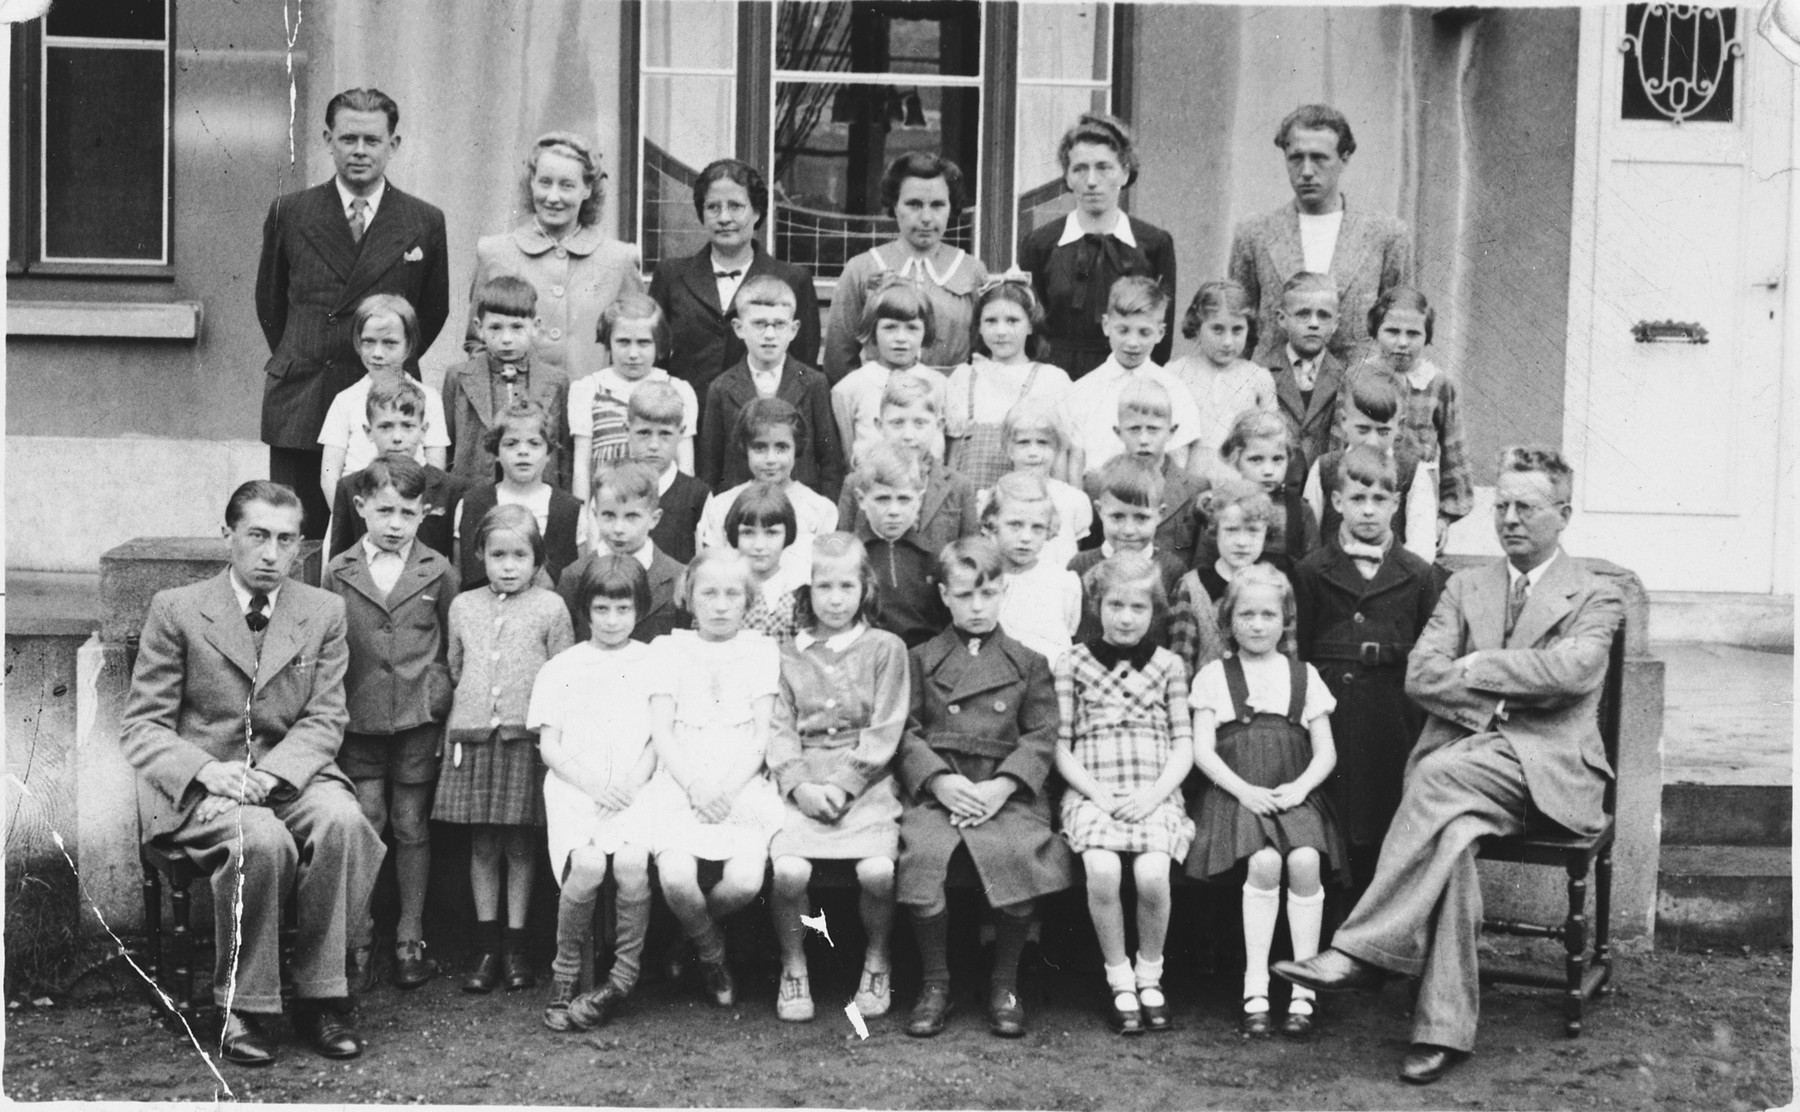 Group portrait of faculty and students of a public elementary school in Antwerp.  Among those pictured is Charlotte Mendelowicz (third row from the front, fourth from the left).